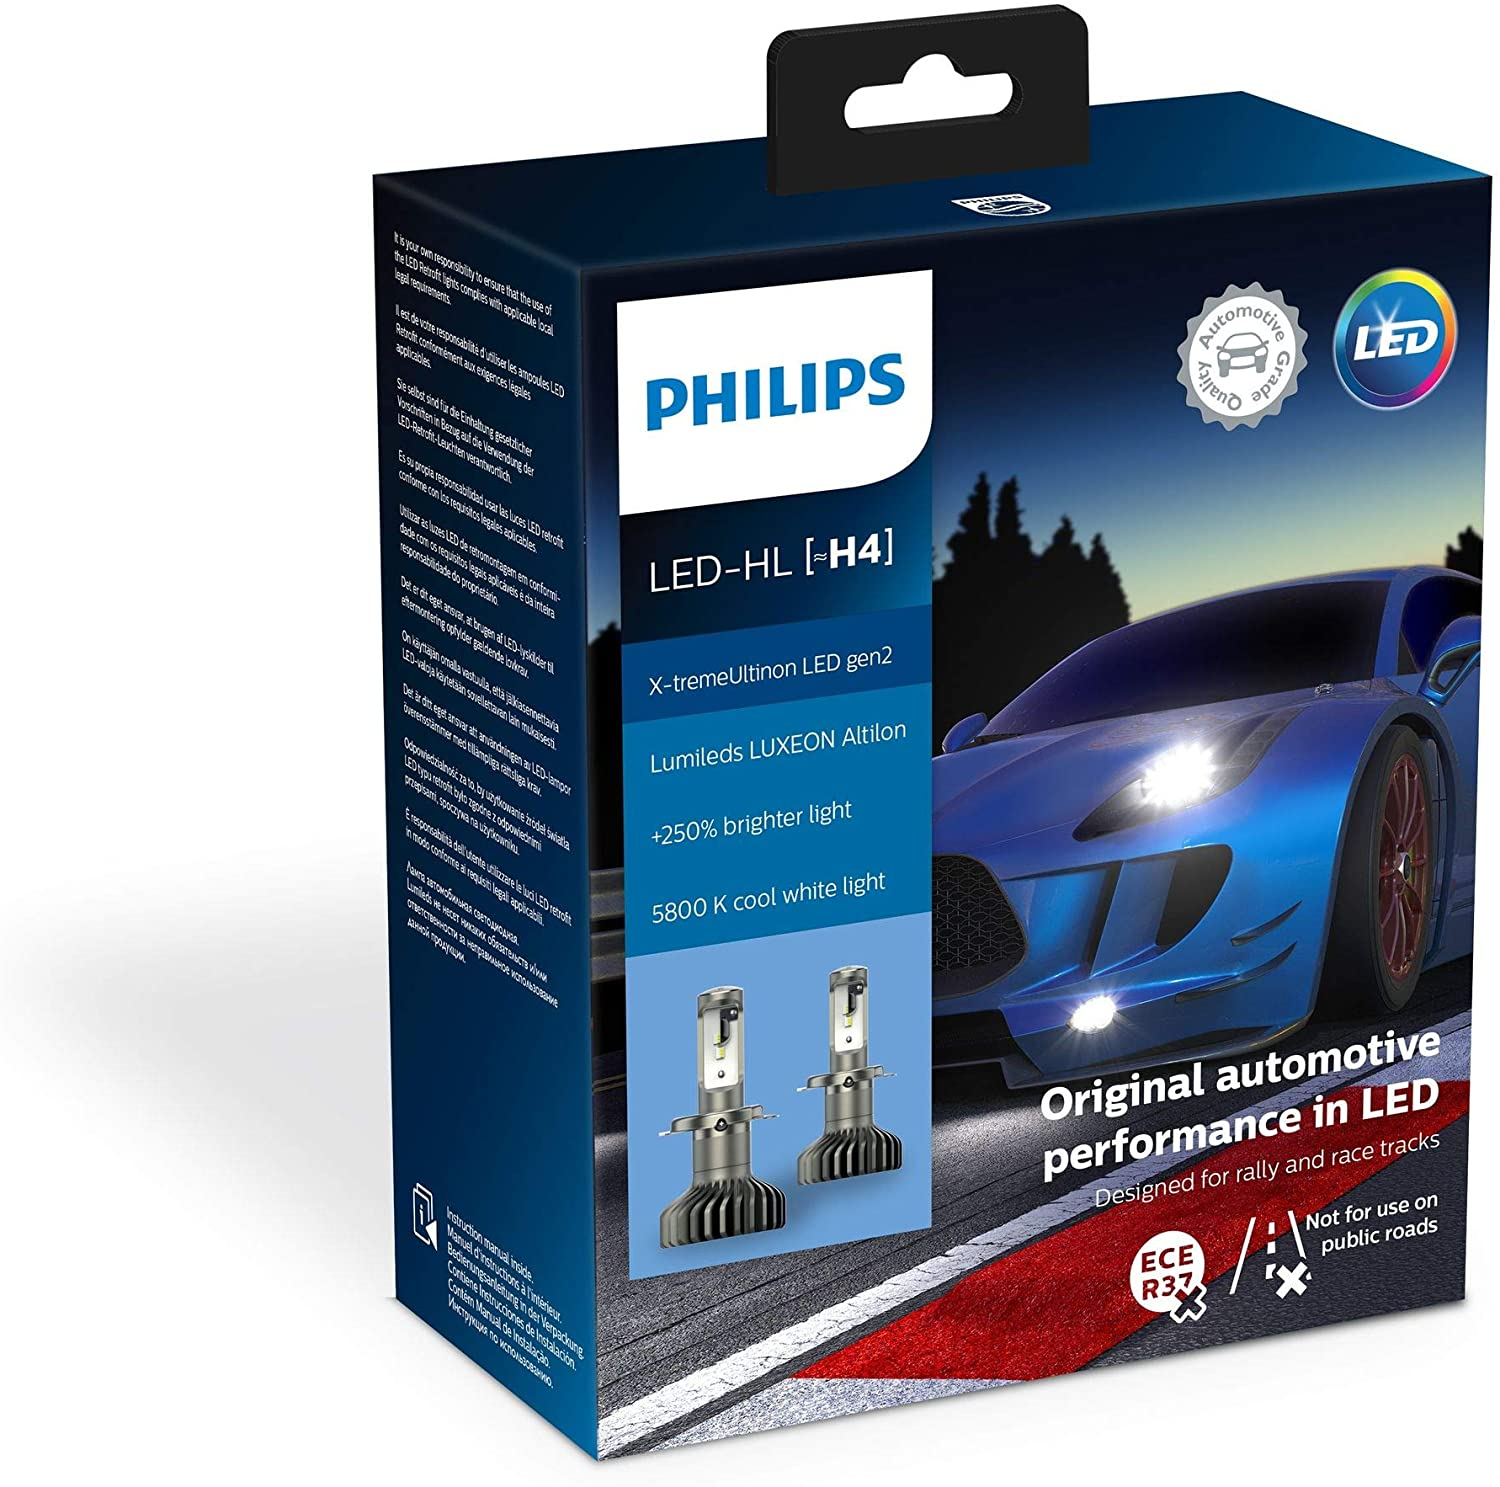 Philips X-tremeUltinon gen2 LED X-treme Ultinon Car Headlight Bulbs H4 (Twin)